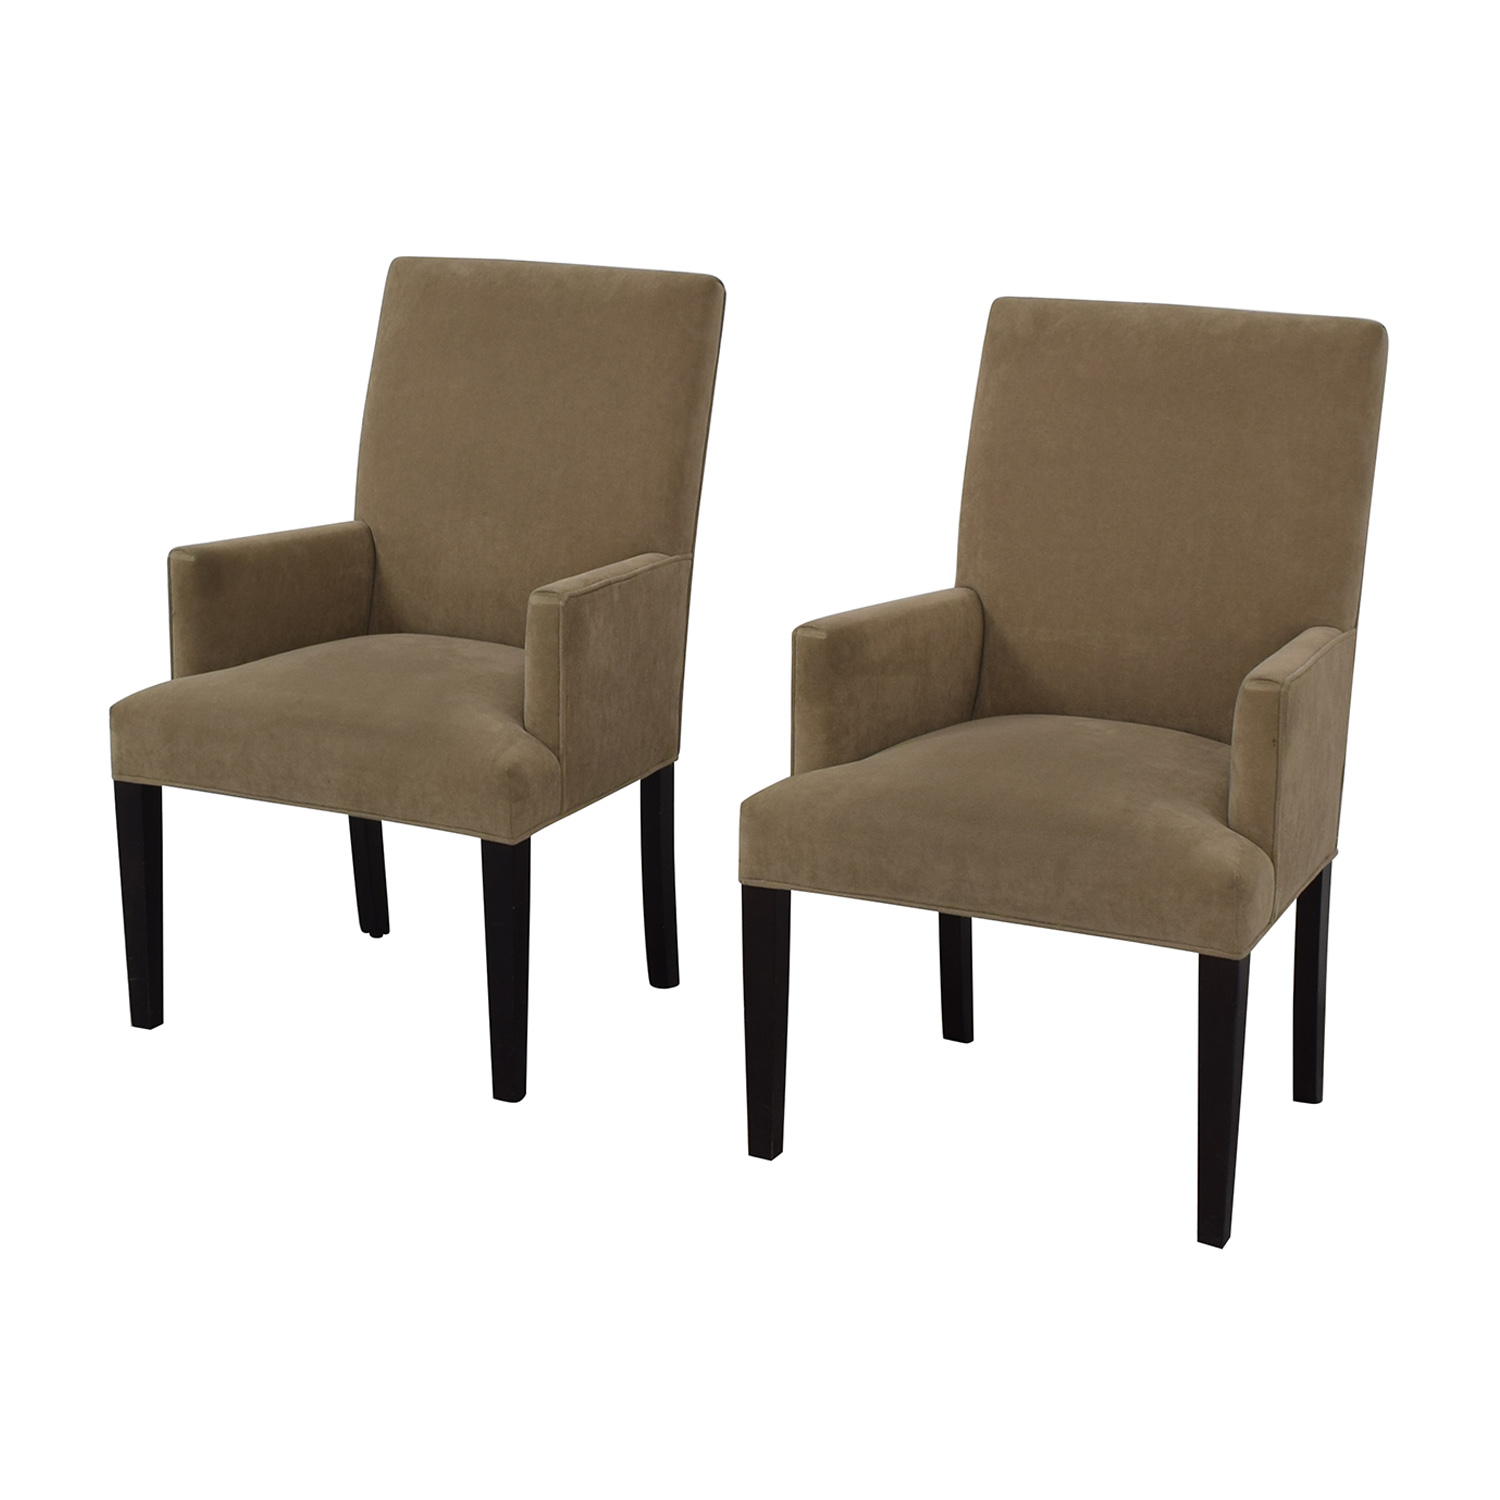 Crate & Barrel Crate & Barrel Tan Dining Chairs for sale